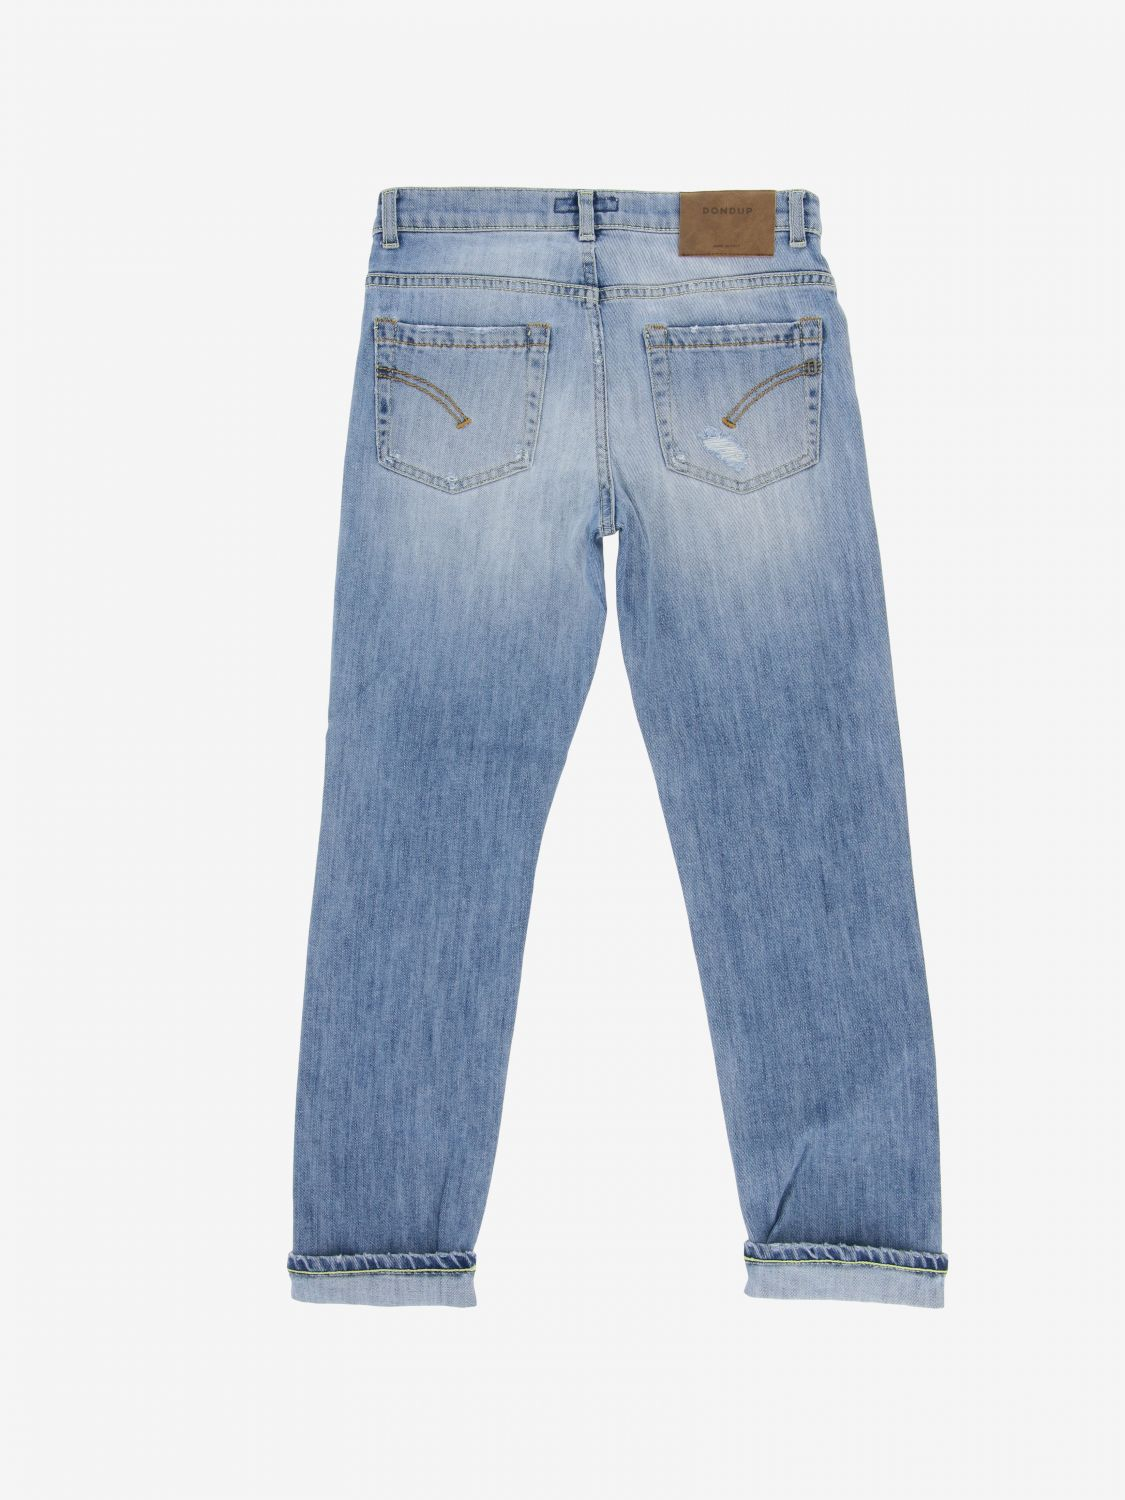 Jeans Dondup: Jeans Brighton Dondup used con rotture sstw 2